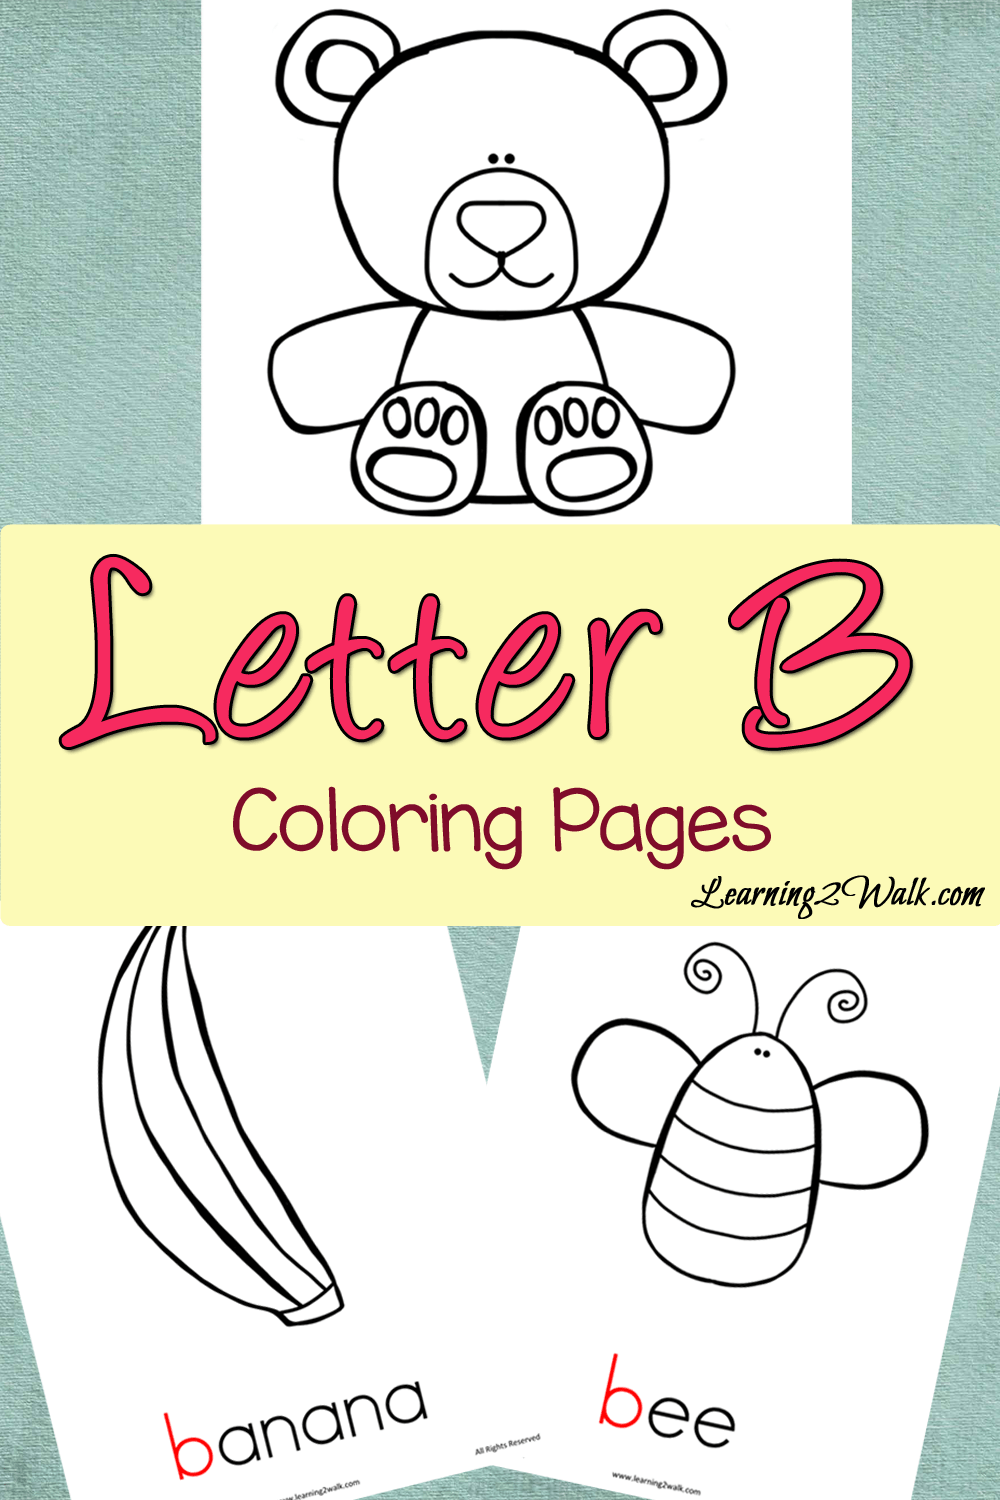 preschool letter activities letter b colouring pages best of kids and parenting preschool. Black Bedroom Furniture Sets. Home Design Ideas